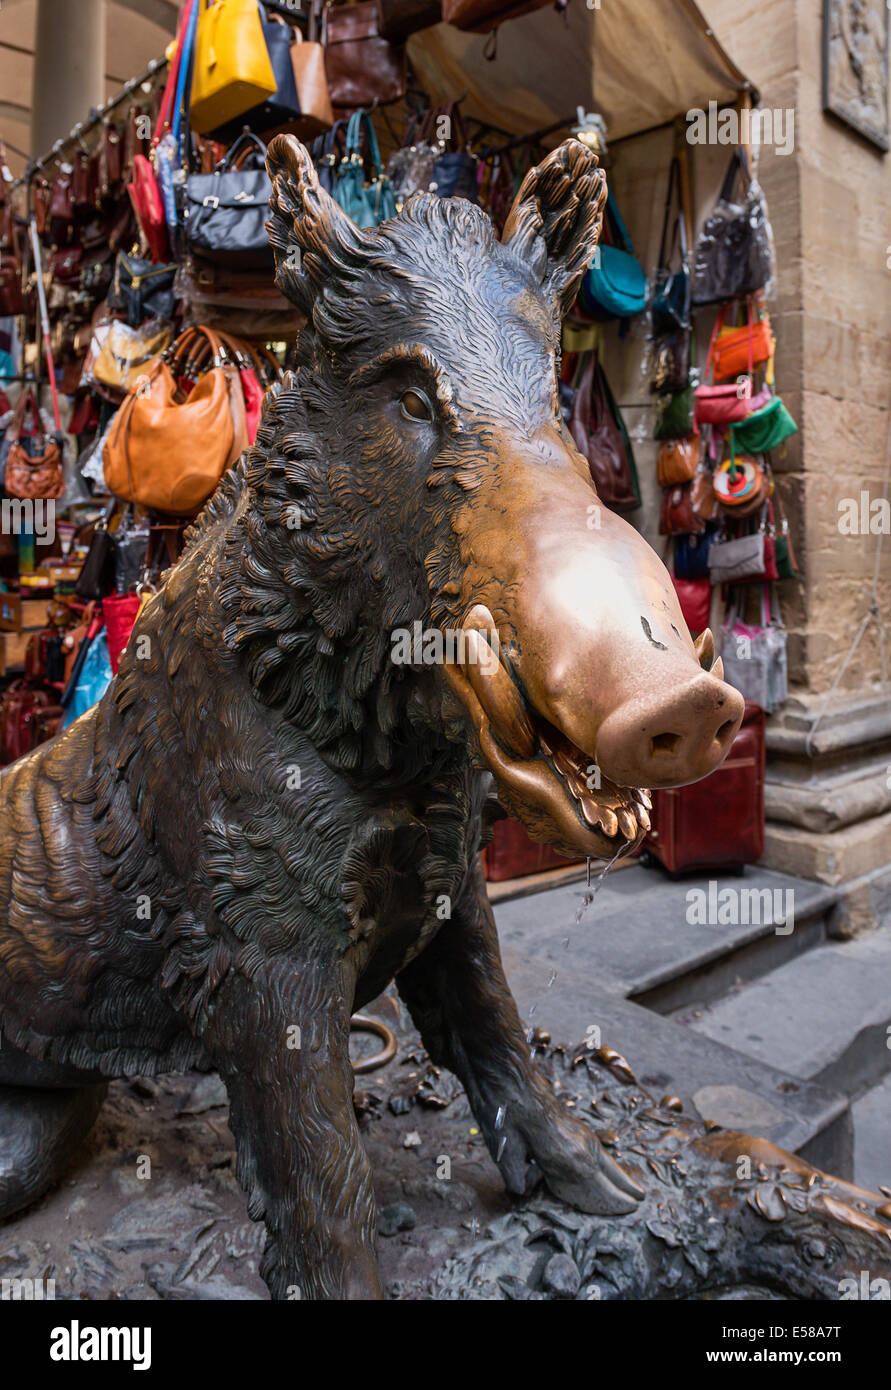 Il Porcellino sculpture at Mercato Nuovo, Florence, Italy - Stock Image